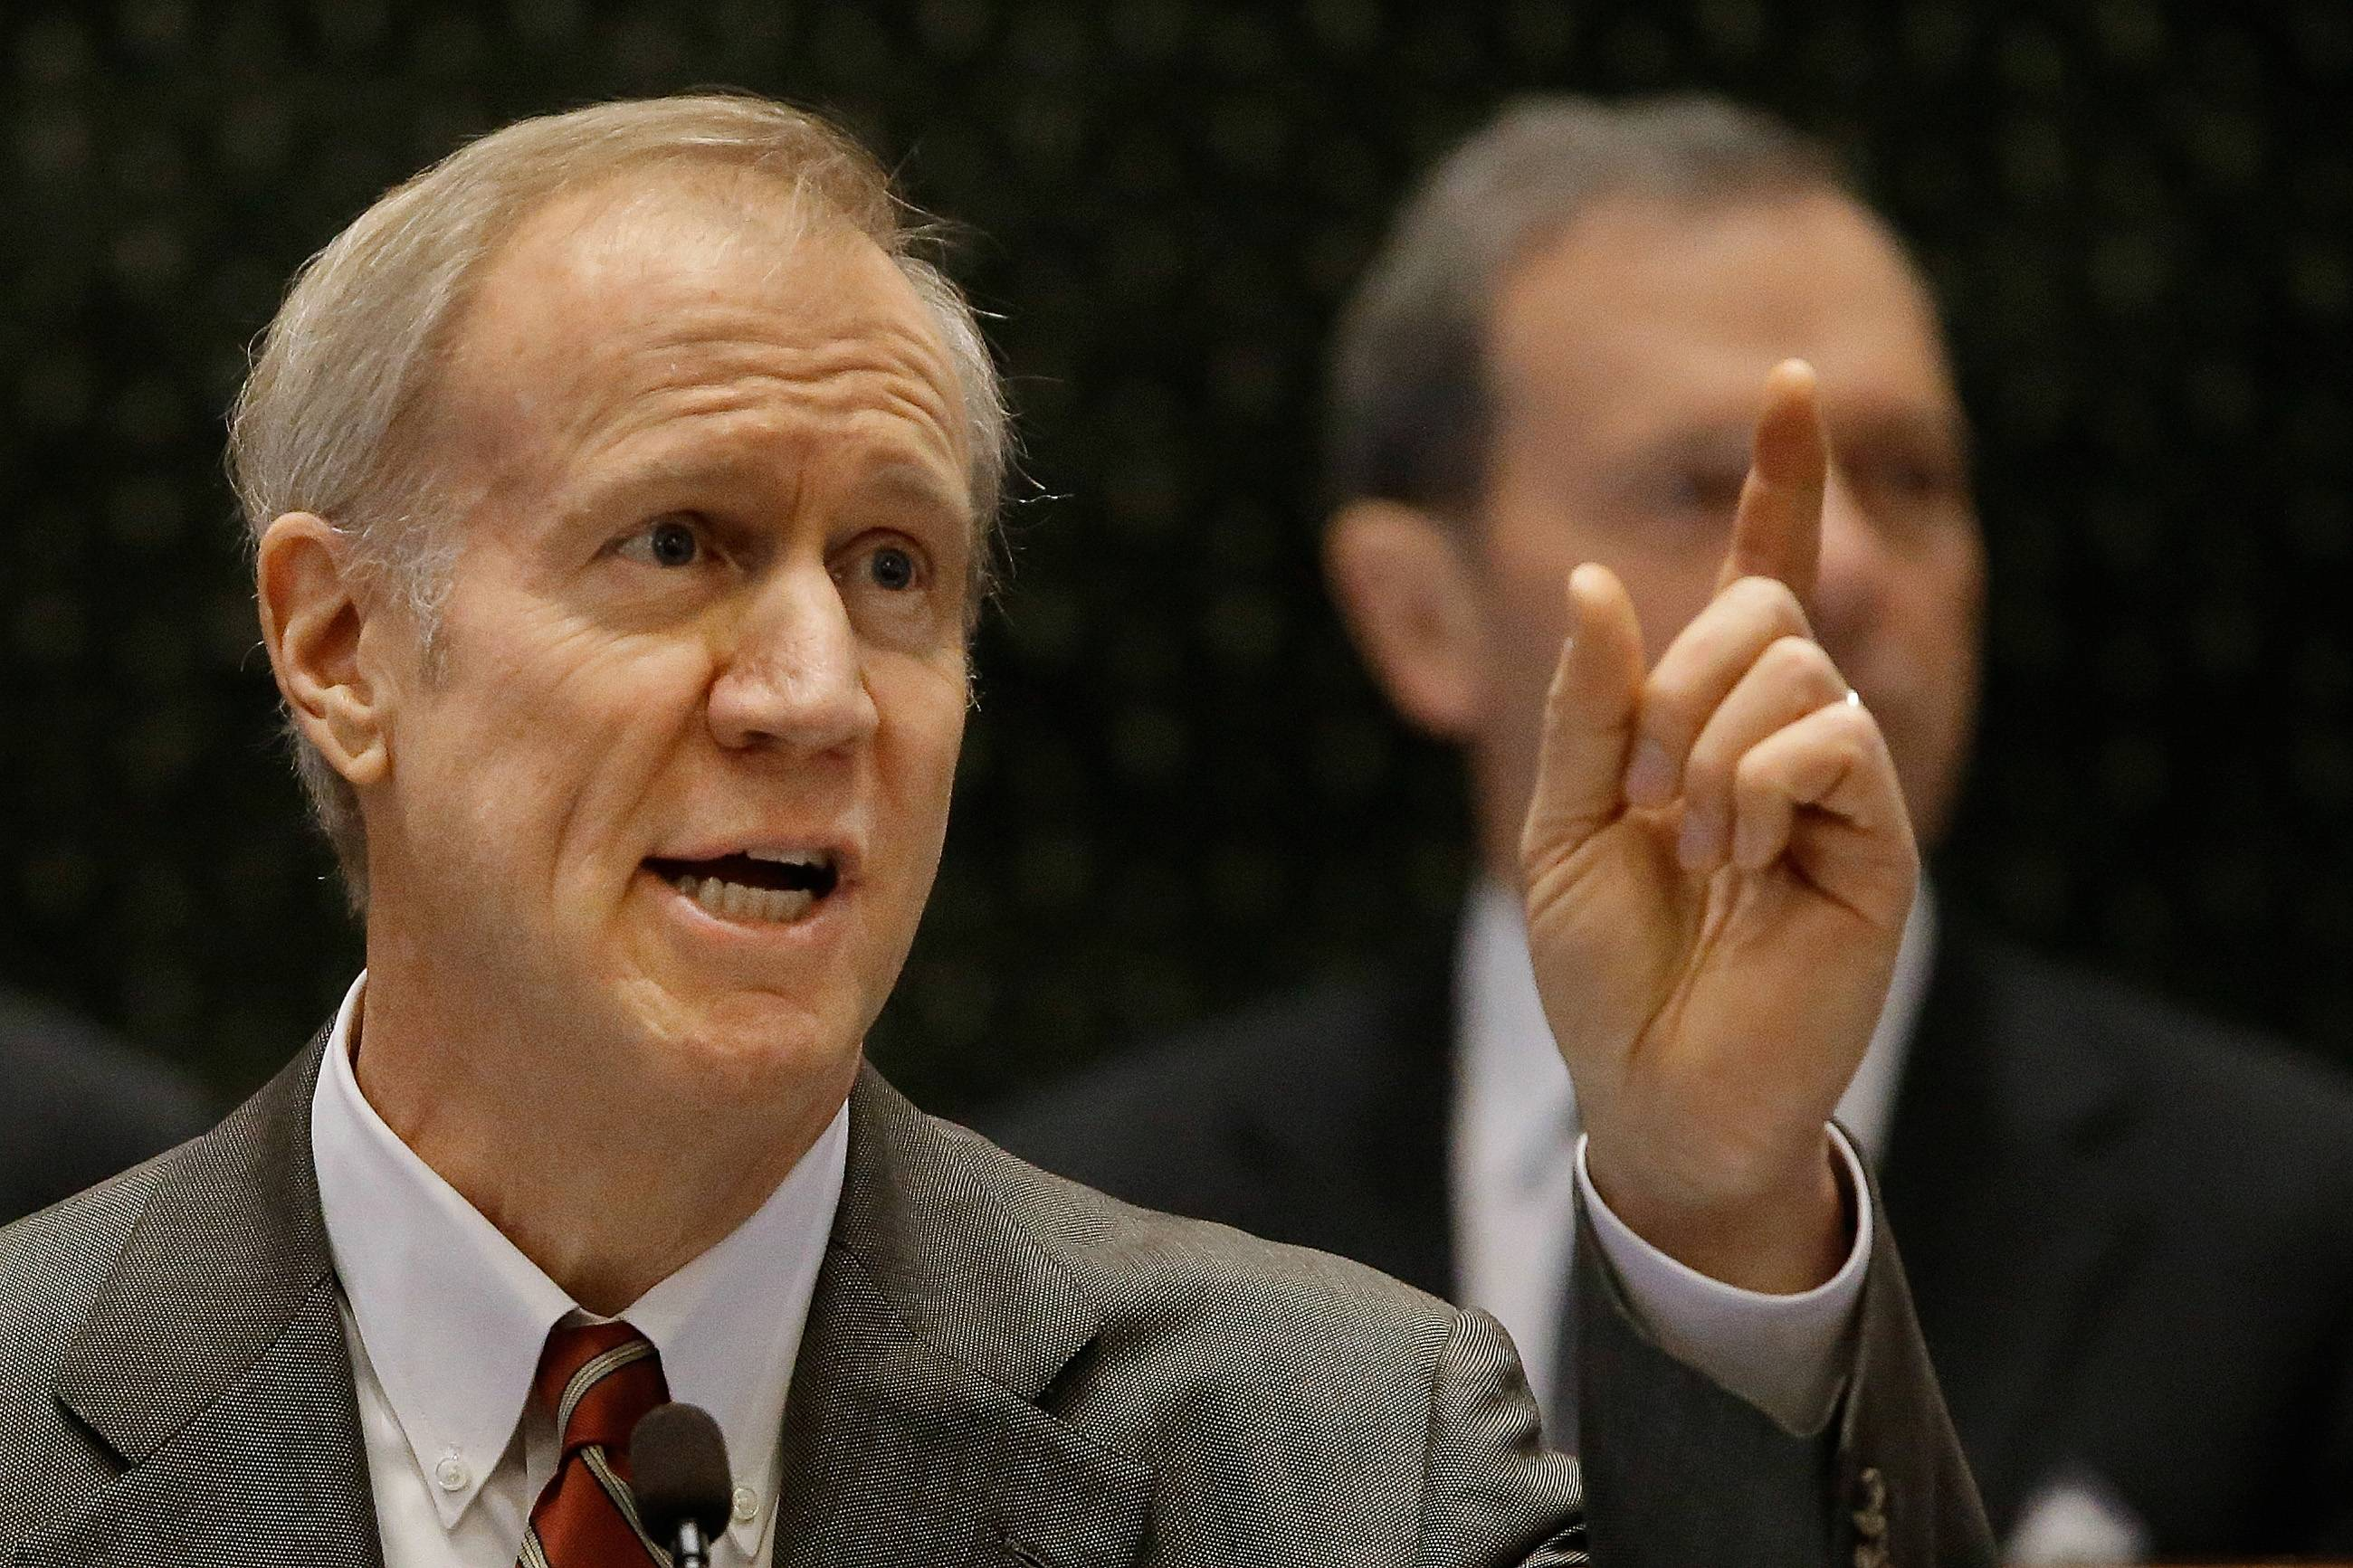 Rauner: Cut suburbs' income tax revenue in half